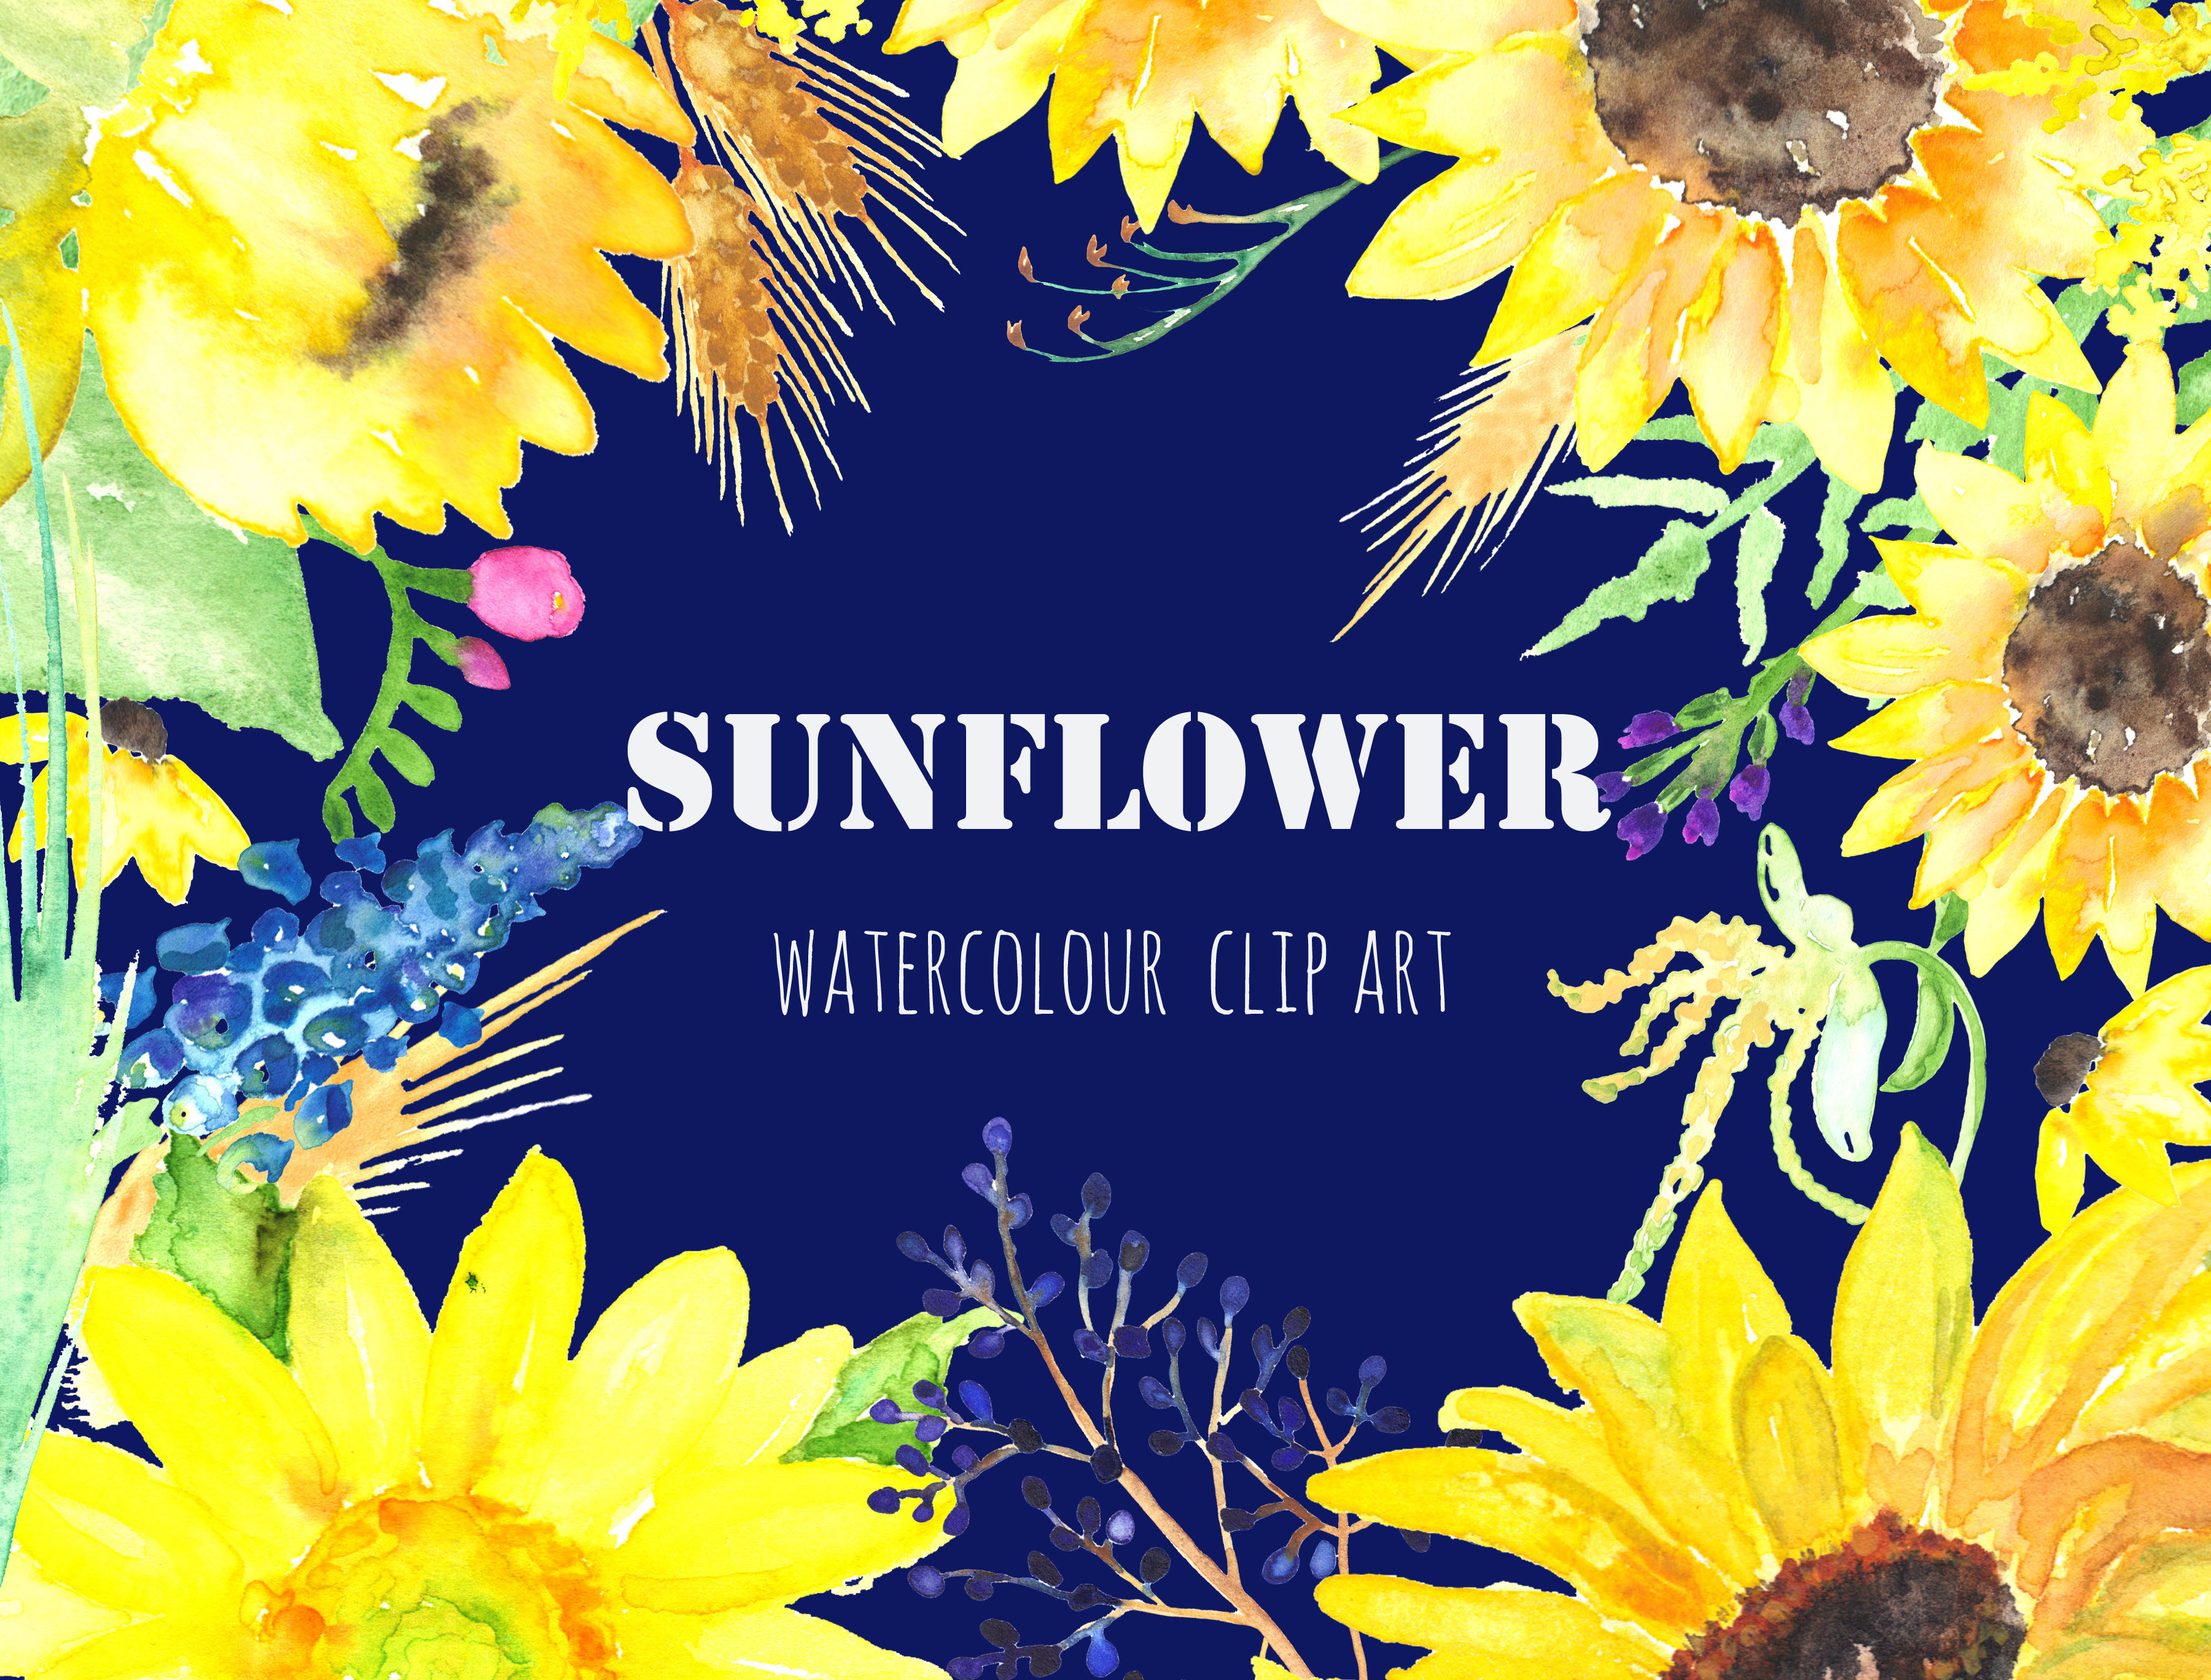 Sunflower Watercolor Clip Art Graphics On Creative Market